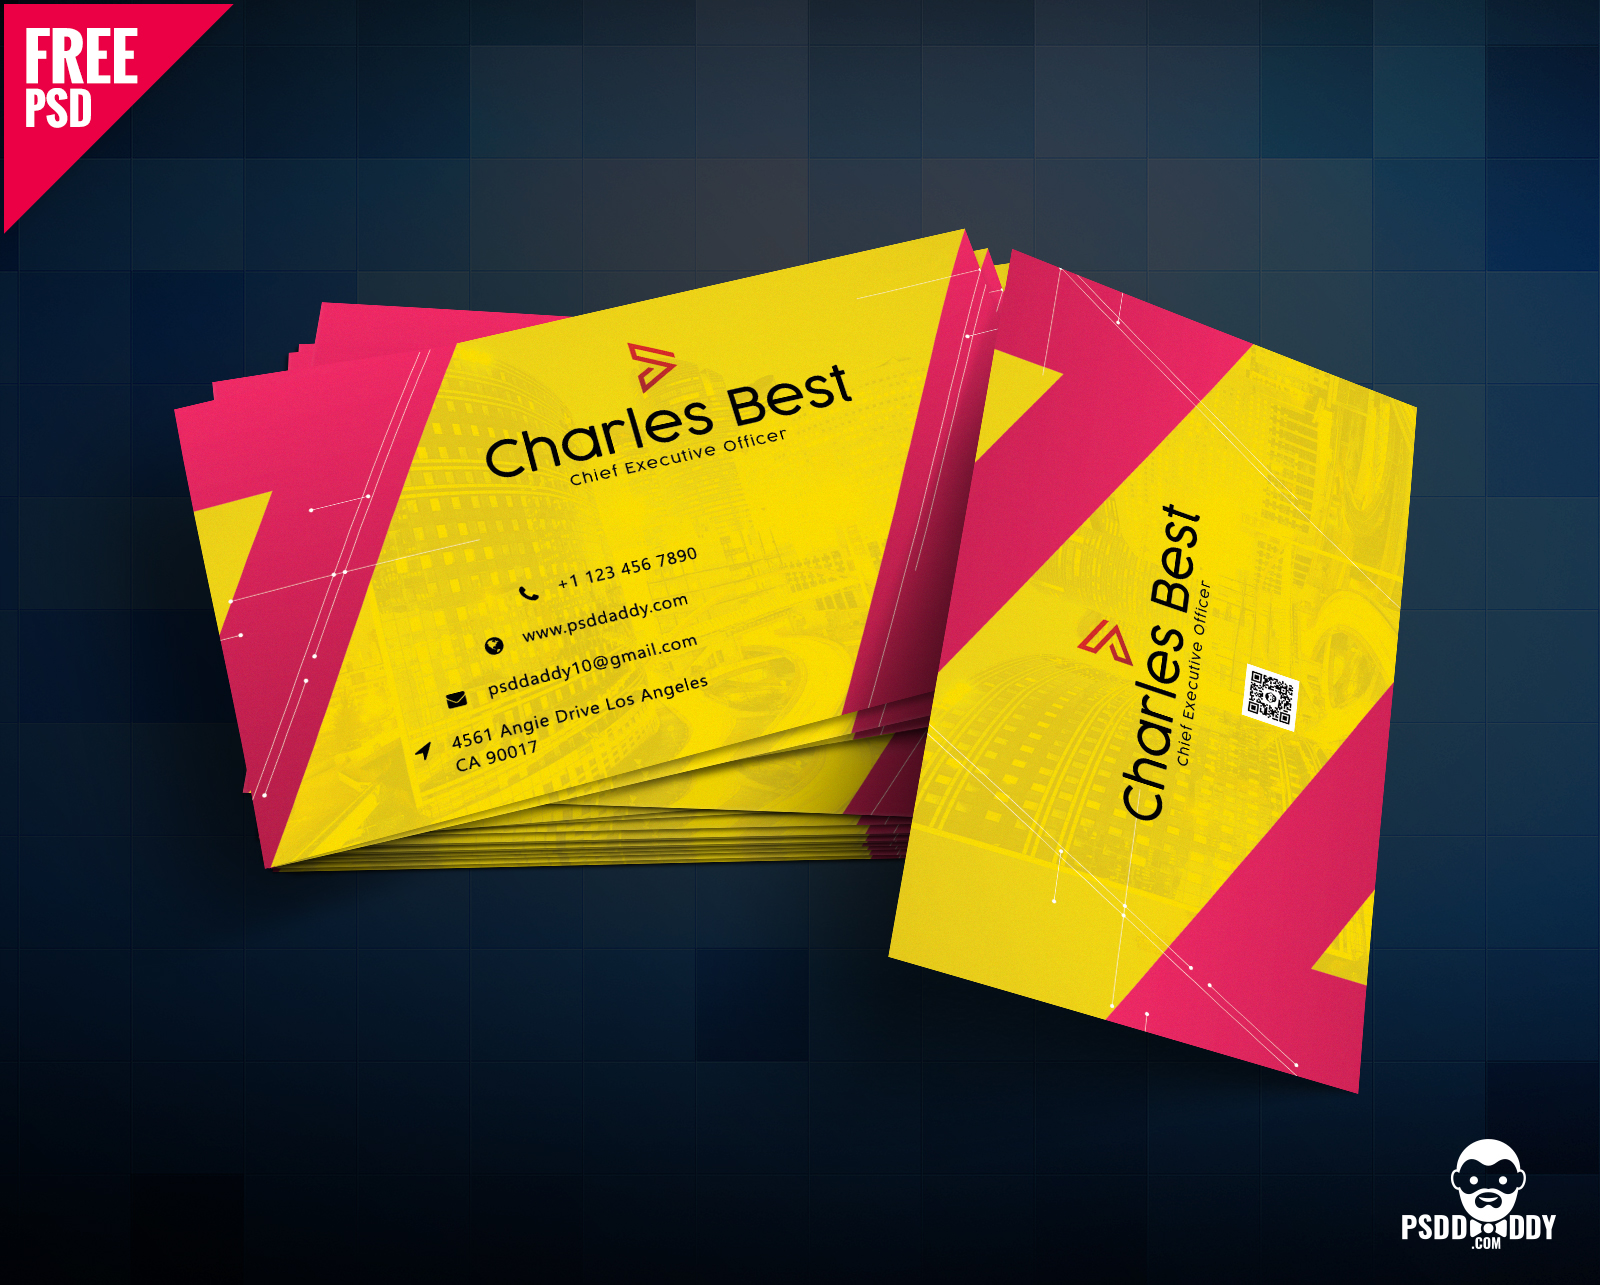 Download Creative Business Card Free PSD PsdDaddycom - Business card templates psd free download